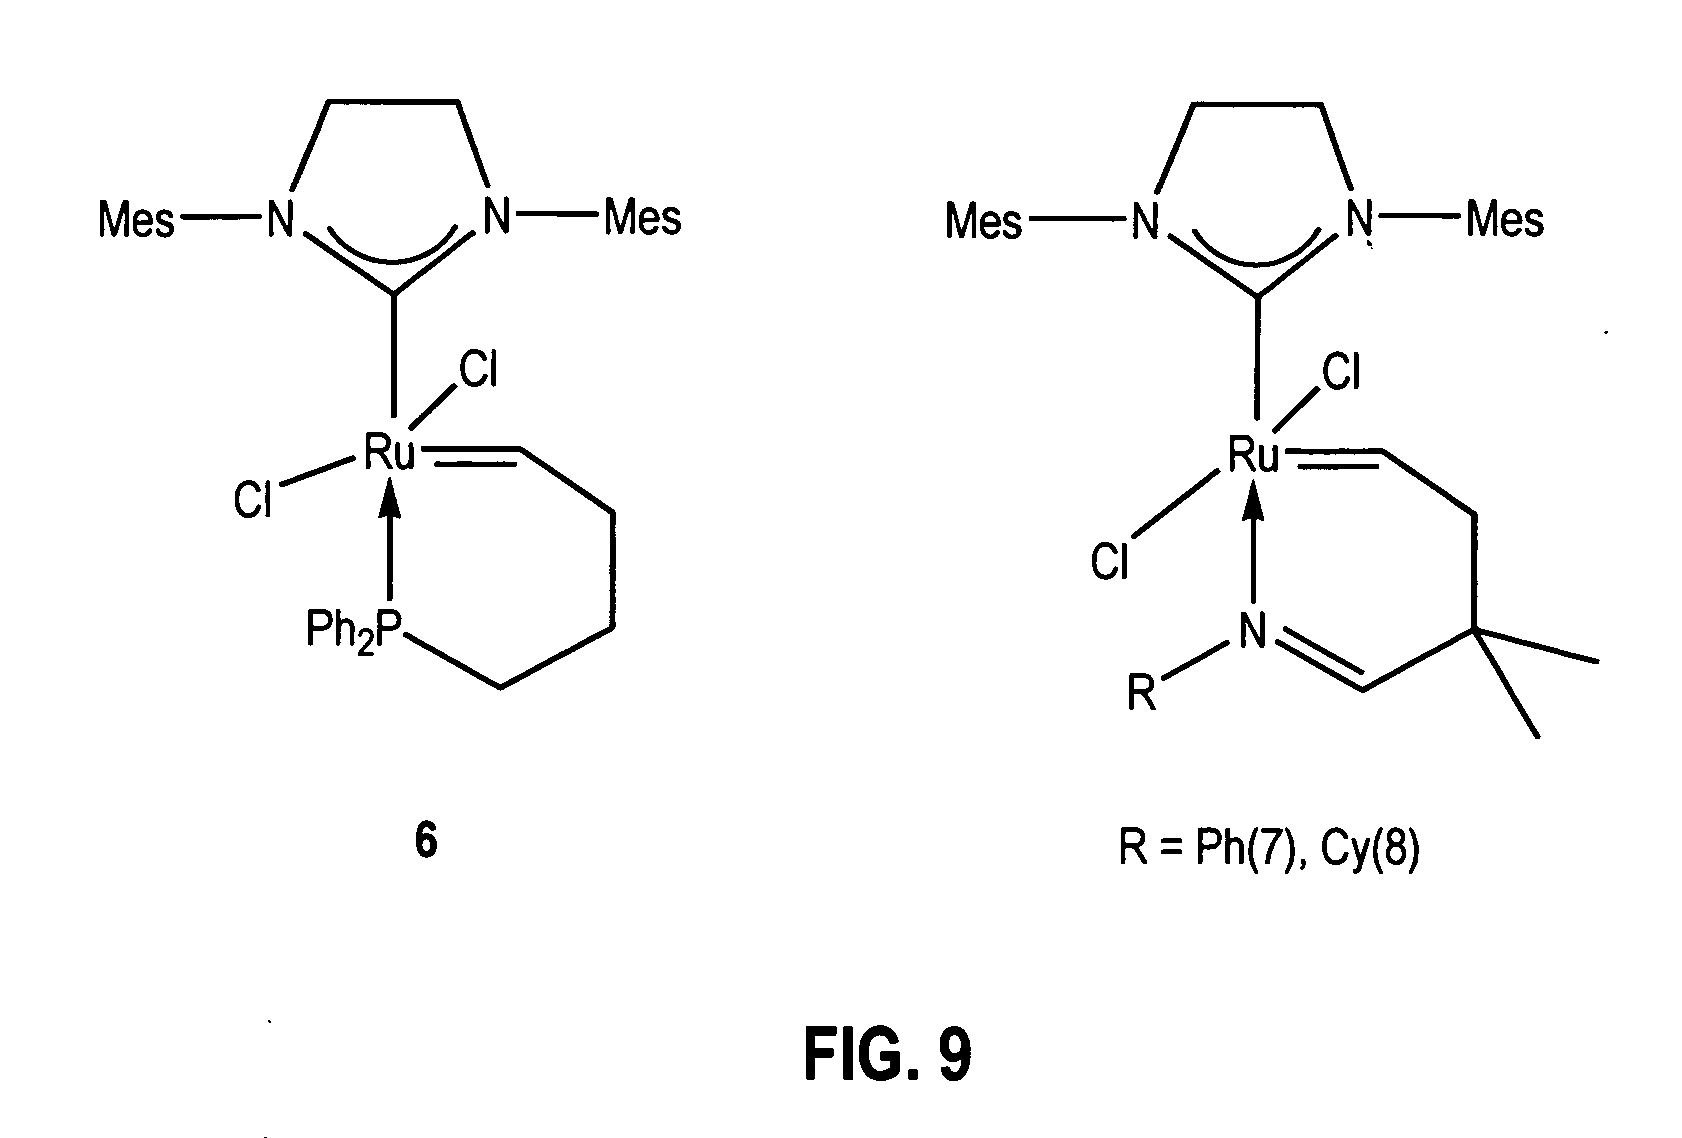 latent olefin metathesis catalysts Carbenes, which are latent organocatalysts, catalyse a transesterification reaction when exposed to ultrasound in solution furthermore, ultrasonic activation of a ruthenium biscarbene complex with appended polymer chains results in catalysis of olefin metathesis reactions in each case, the catalytic activity.